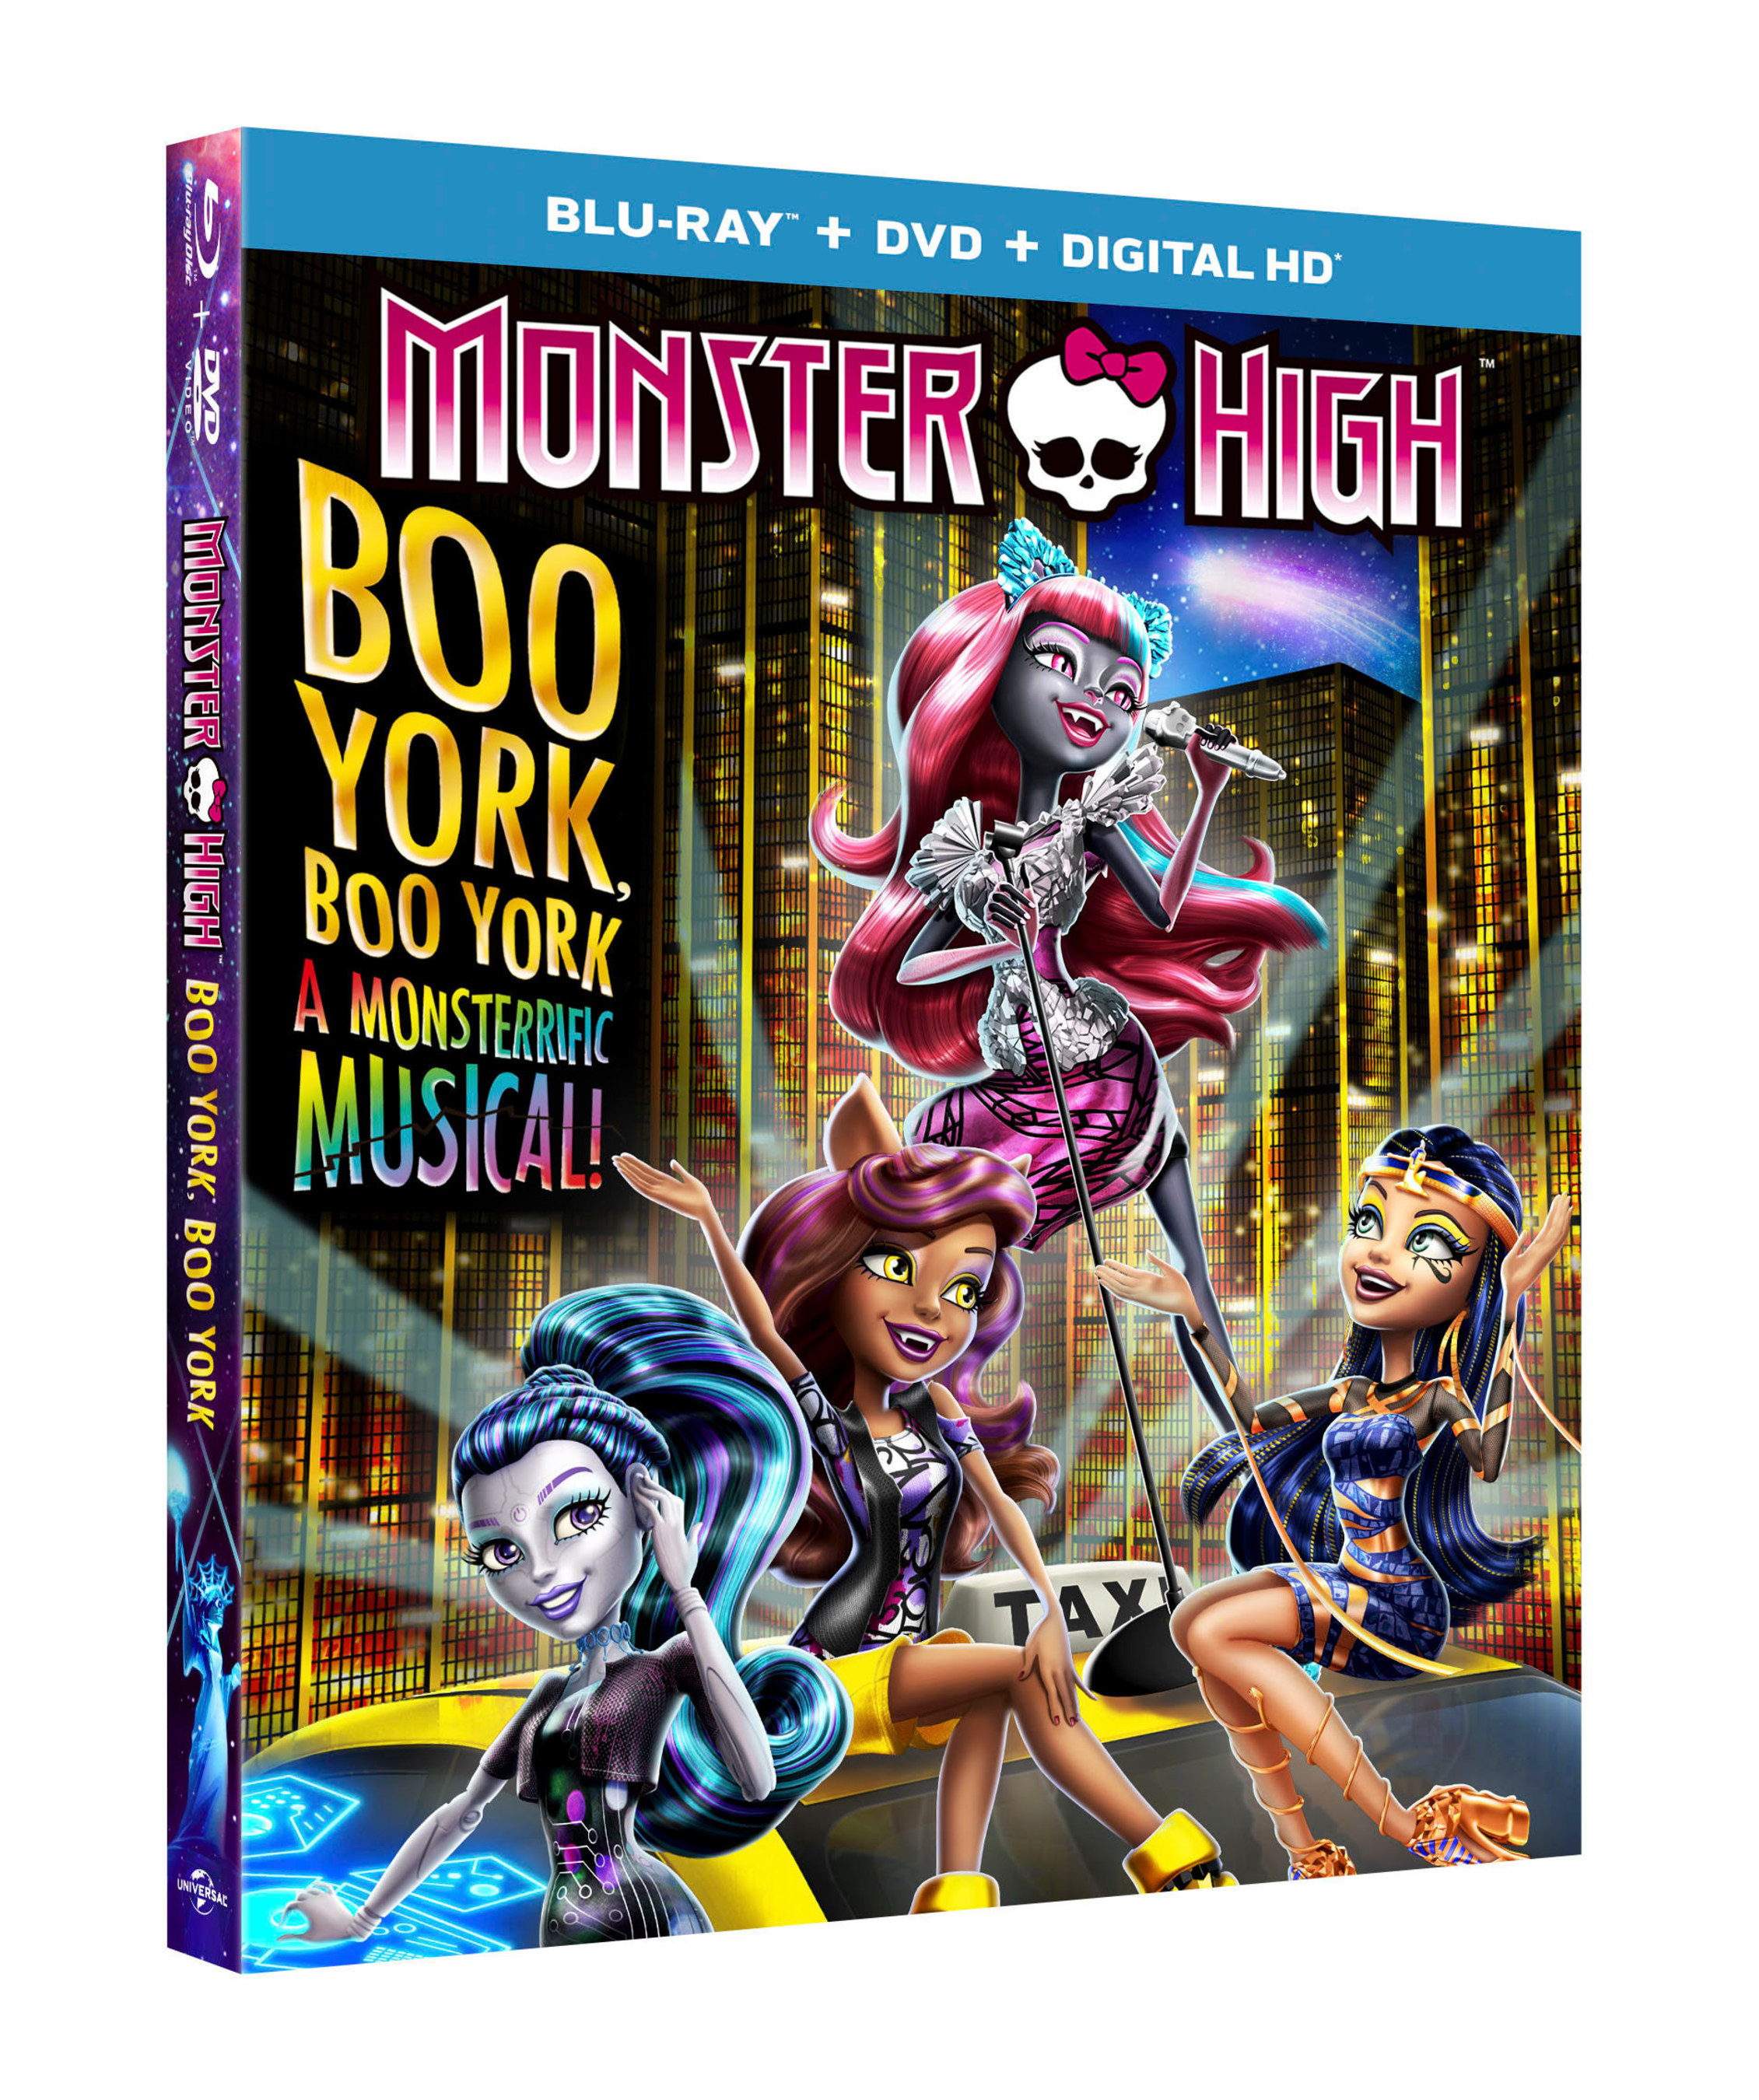 From Universal Pictures Home Entertainment: Monster High: Boo York, Boo York